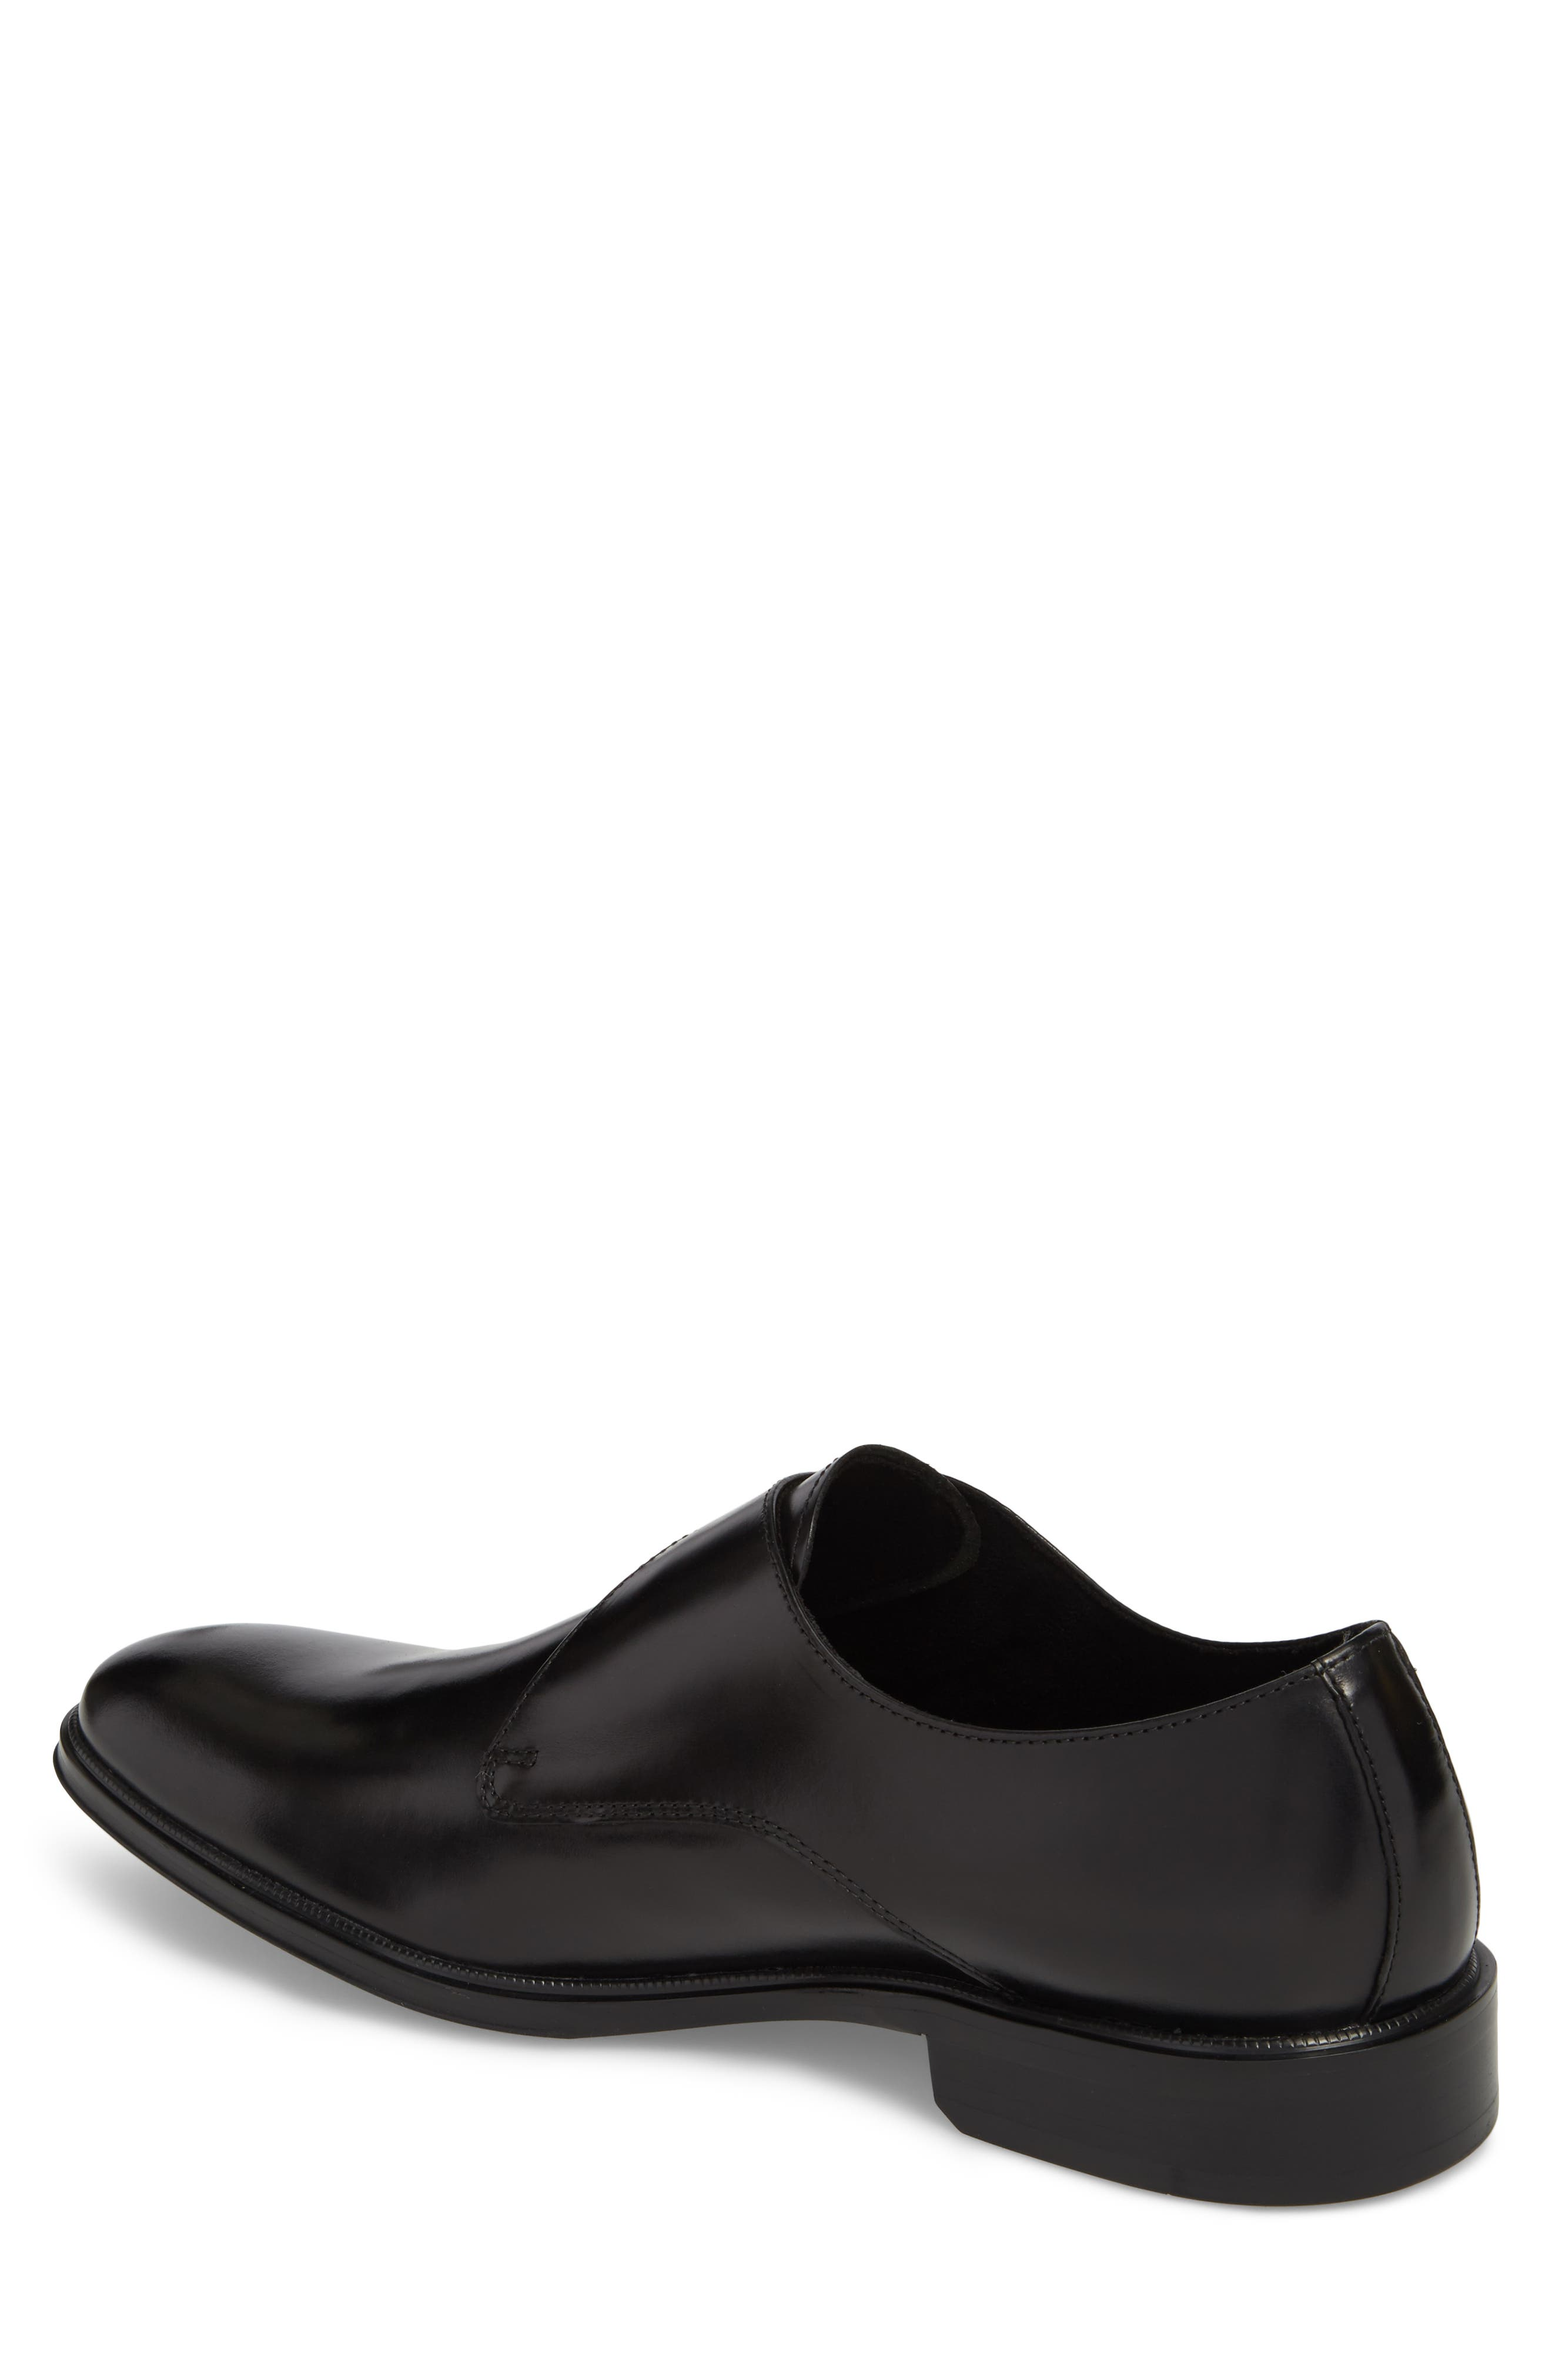 Tully Single Buckle Monk Shoe,                             Alternate thumbnail 2, color,                             Black Leather